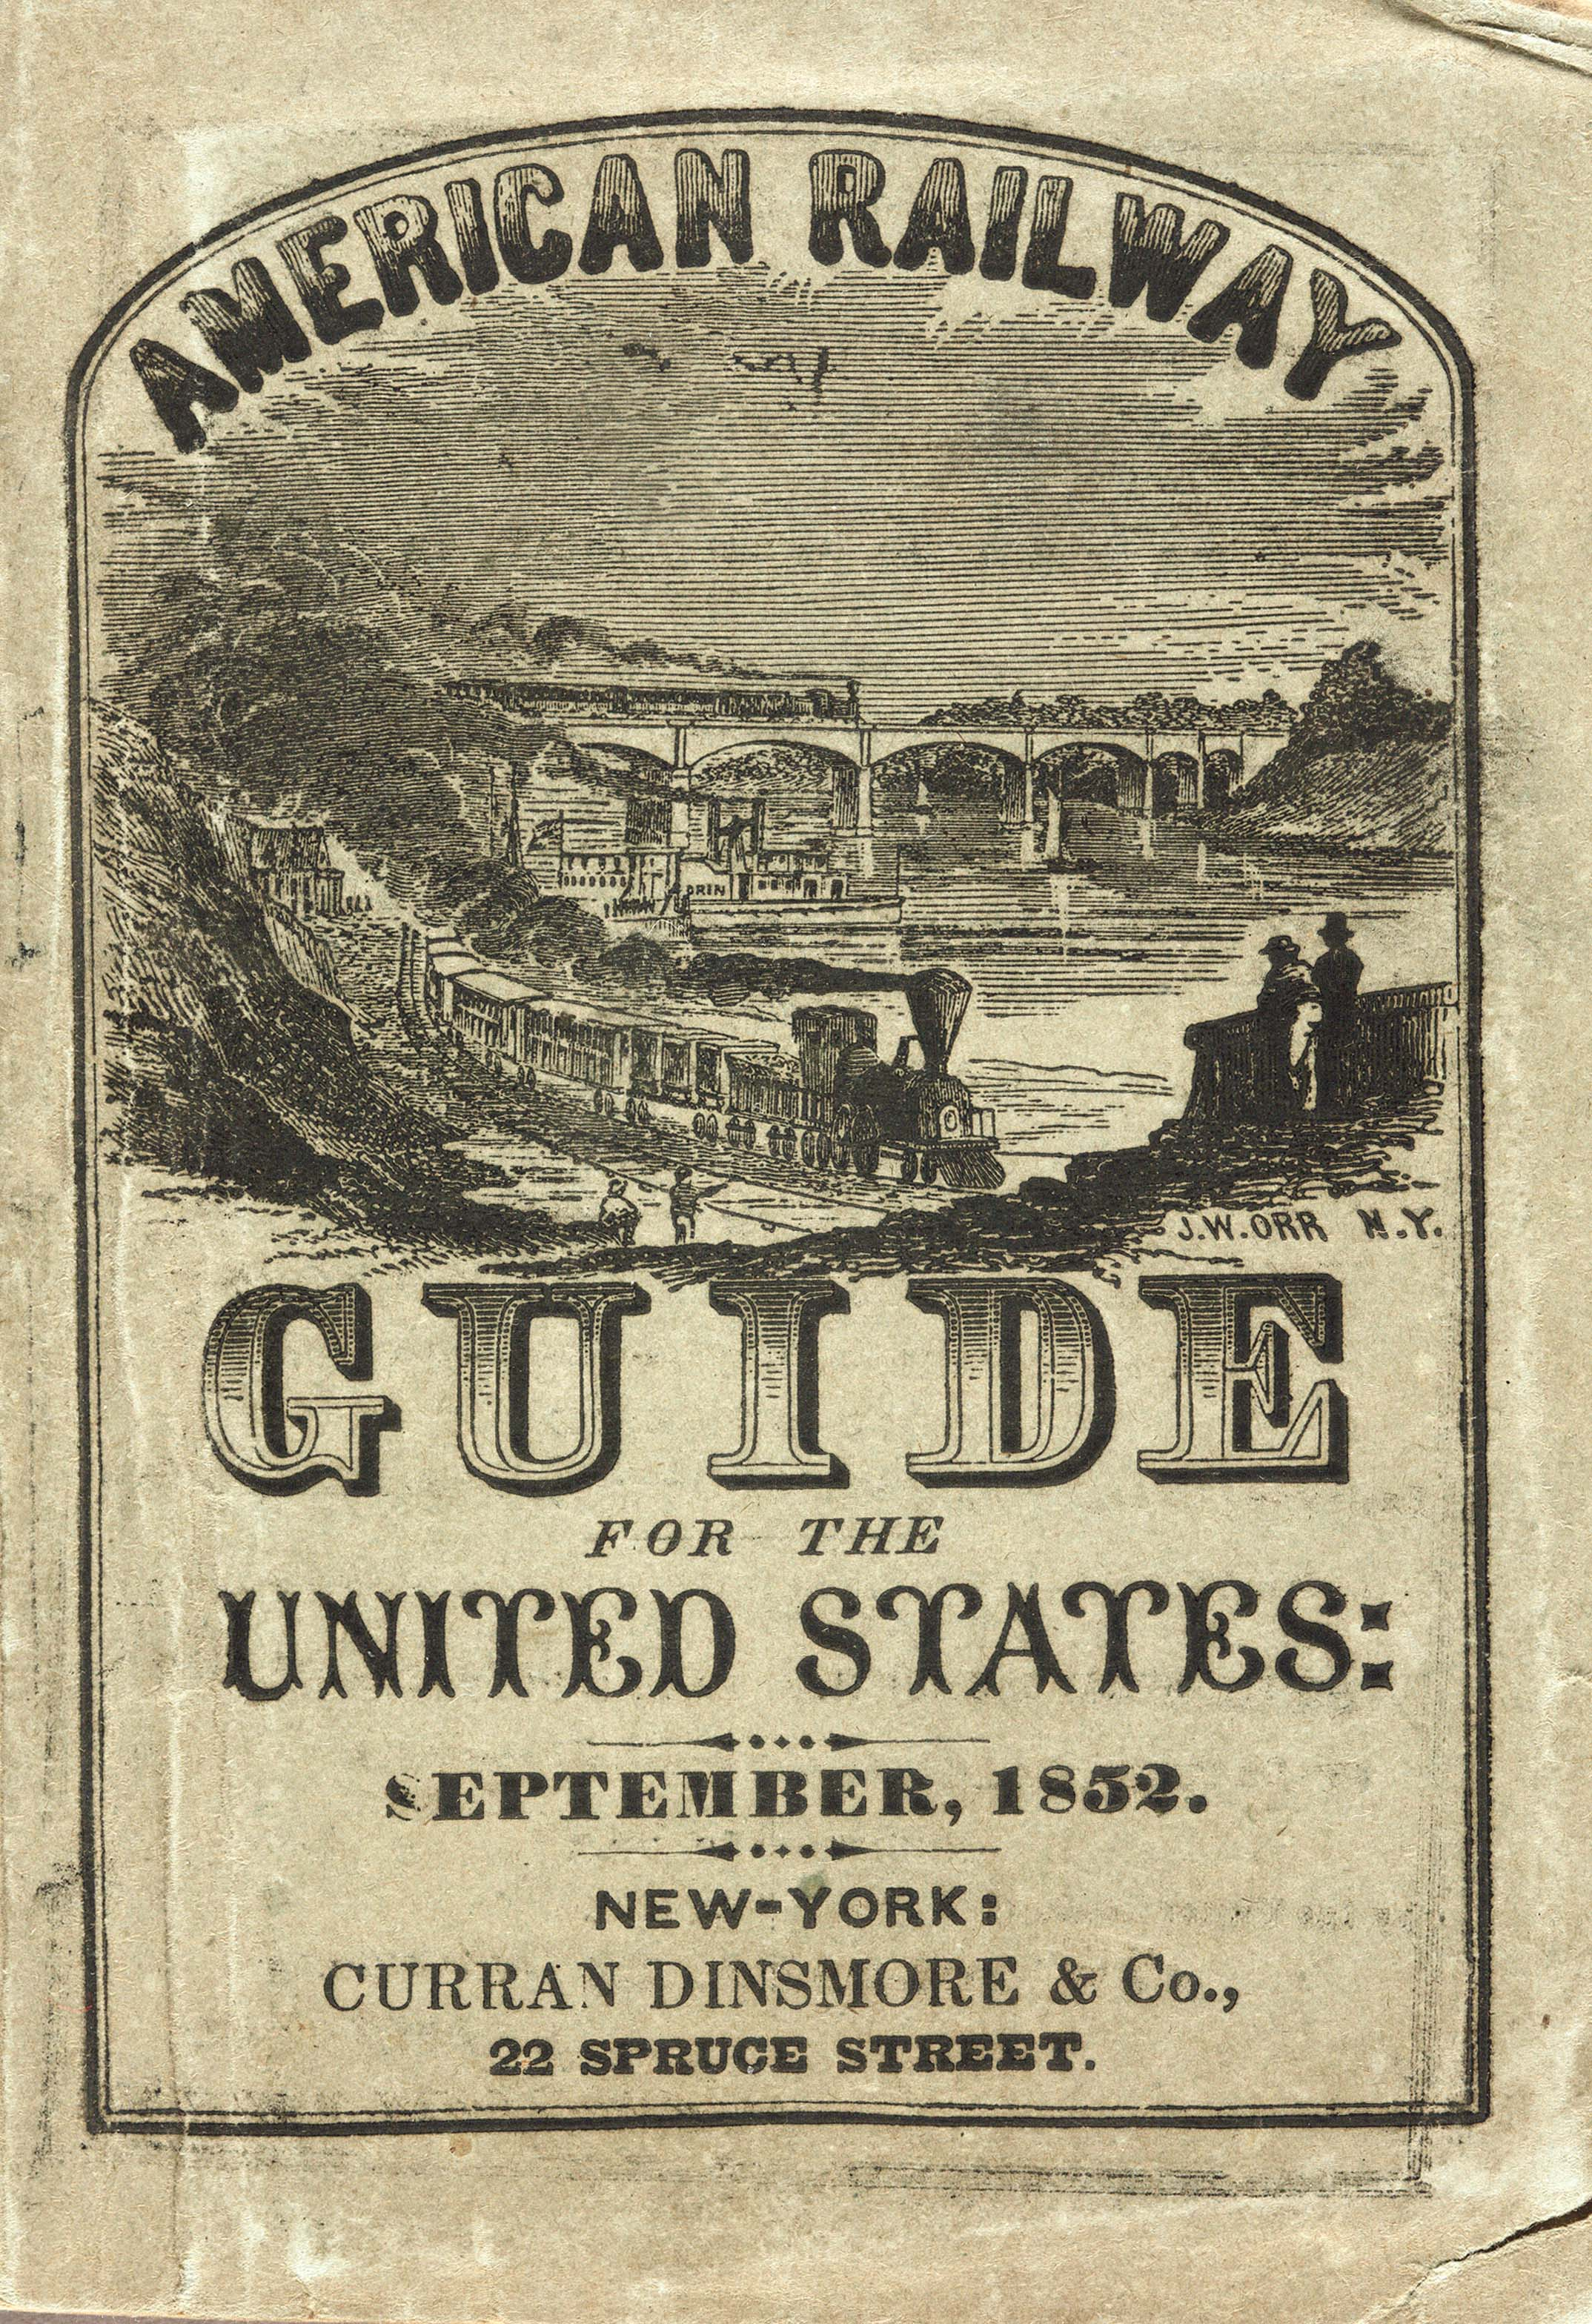 American Railway Guide for 1852. Huntington Library, Art Collections, and Botanical Gardens.